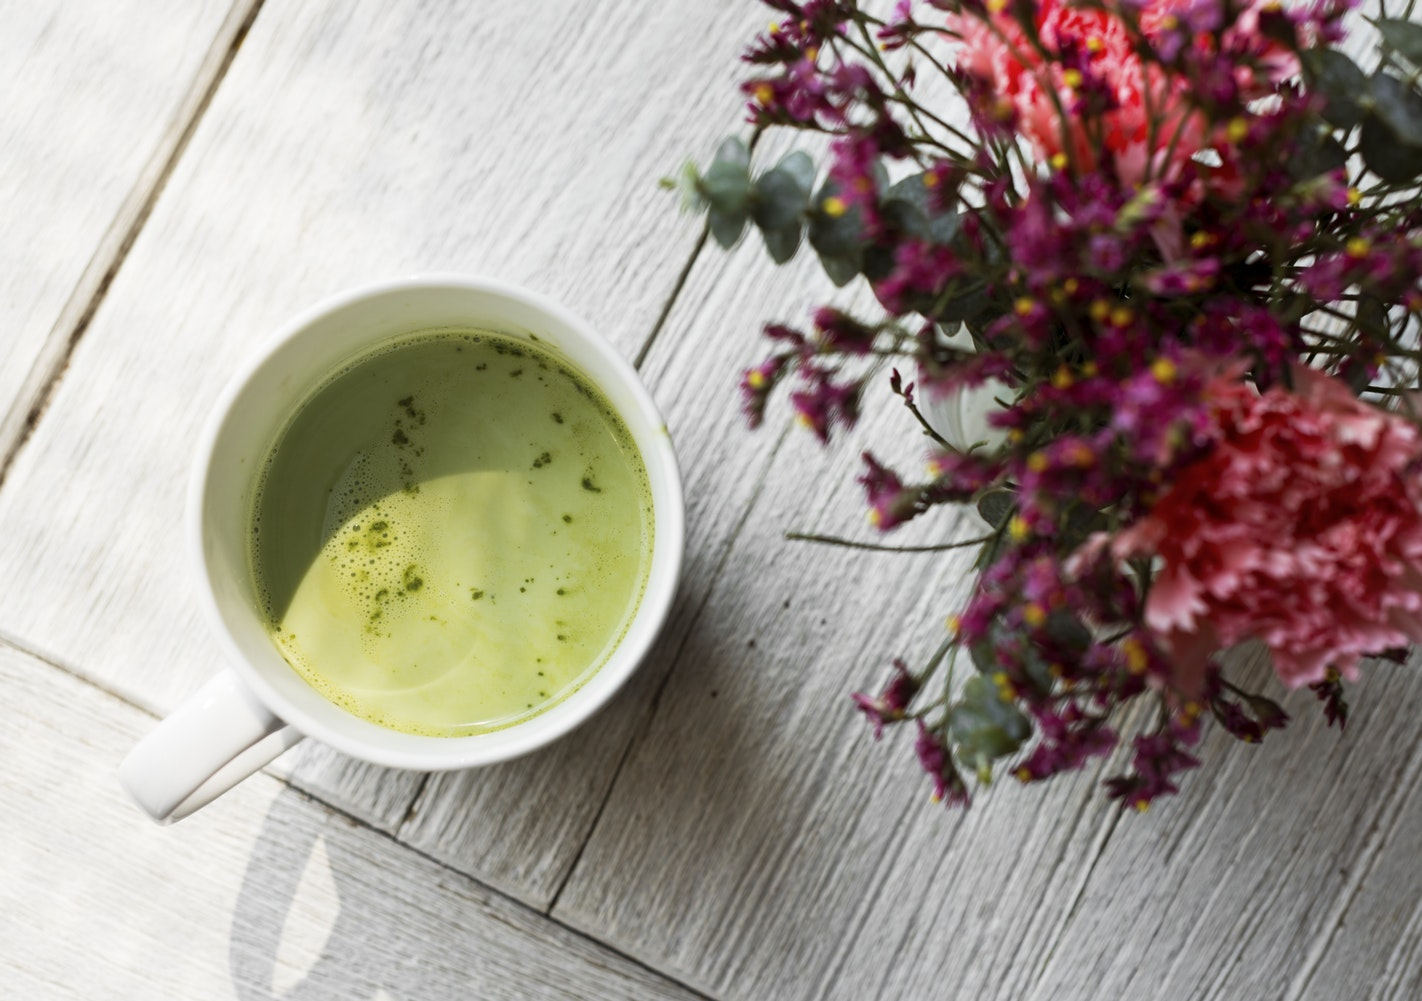 Matcha: what is it and how do I drink it?